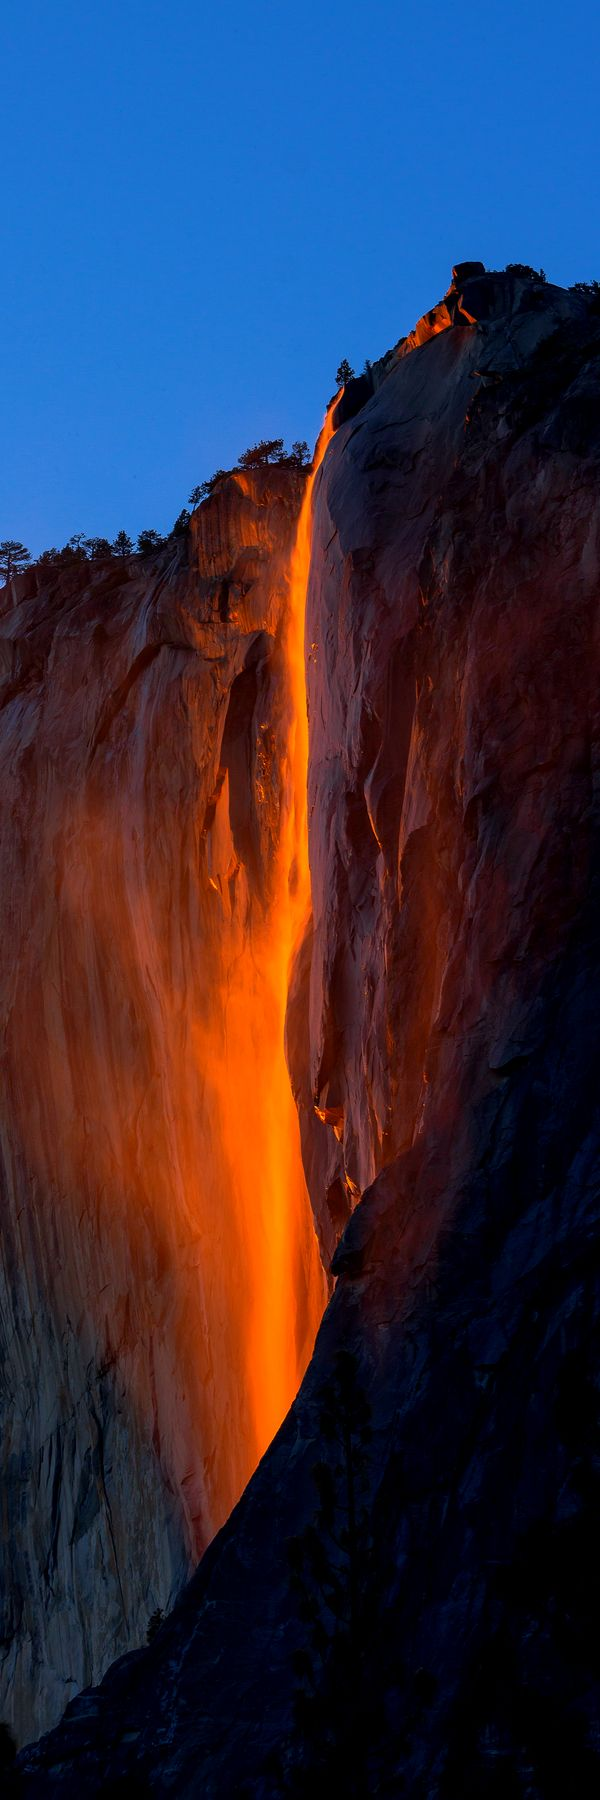 Fire Falls, Yosemite National Park                                                                                                                                                                                 More